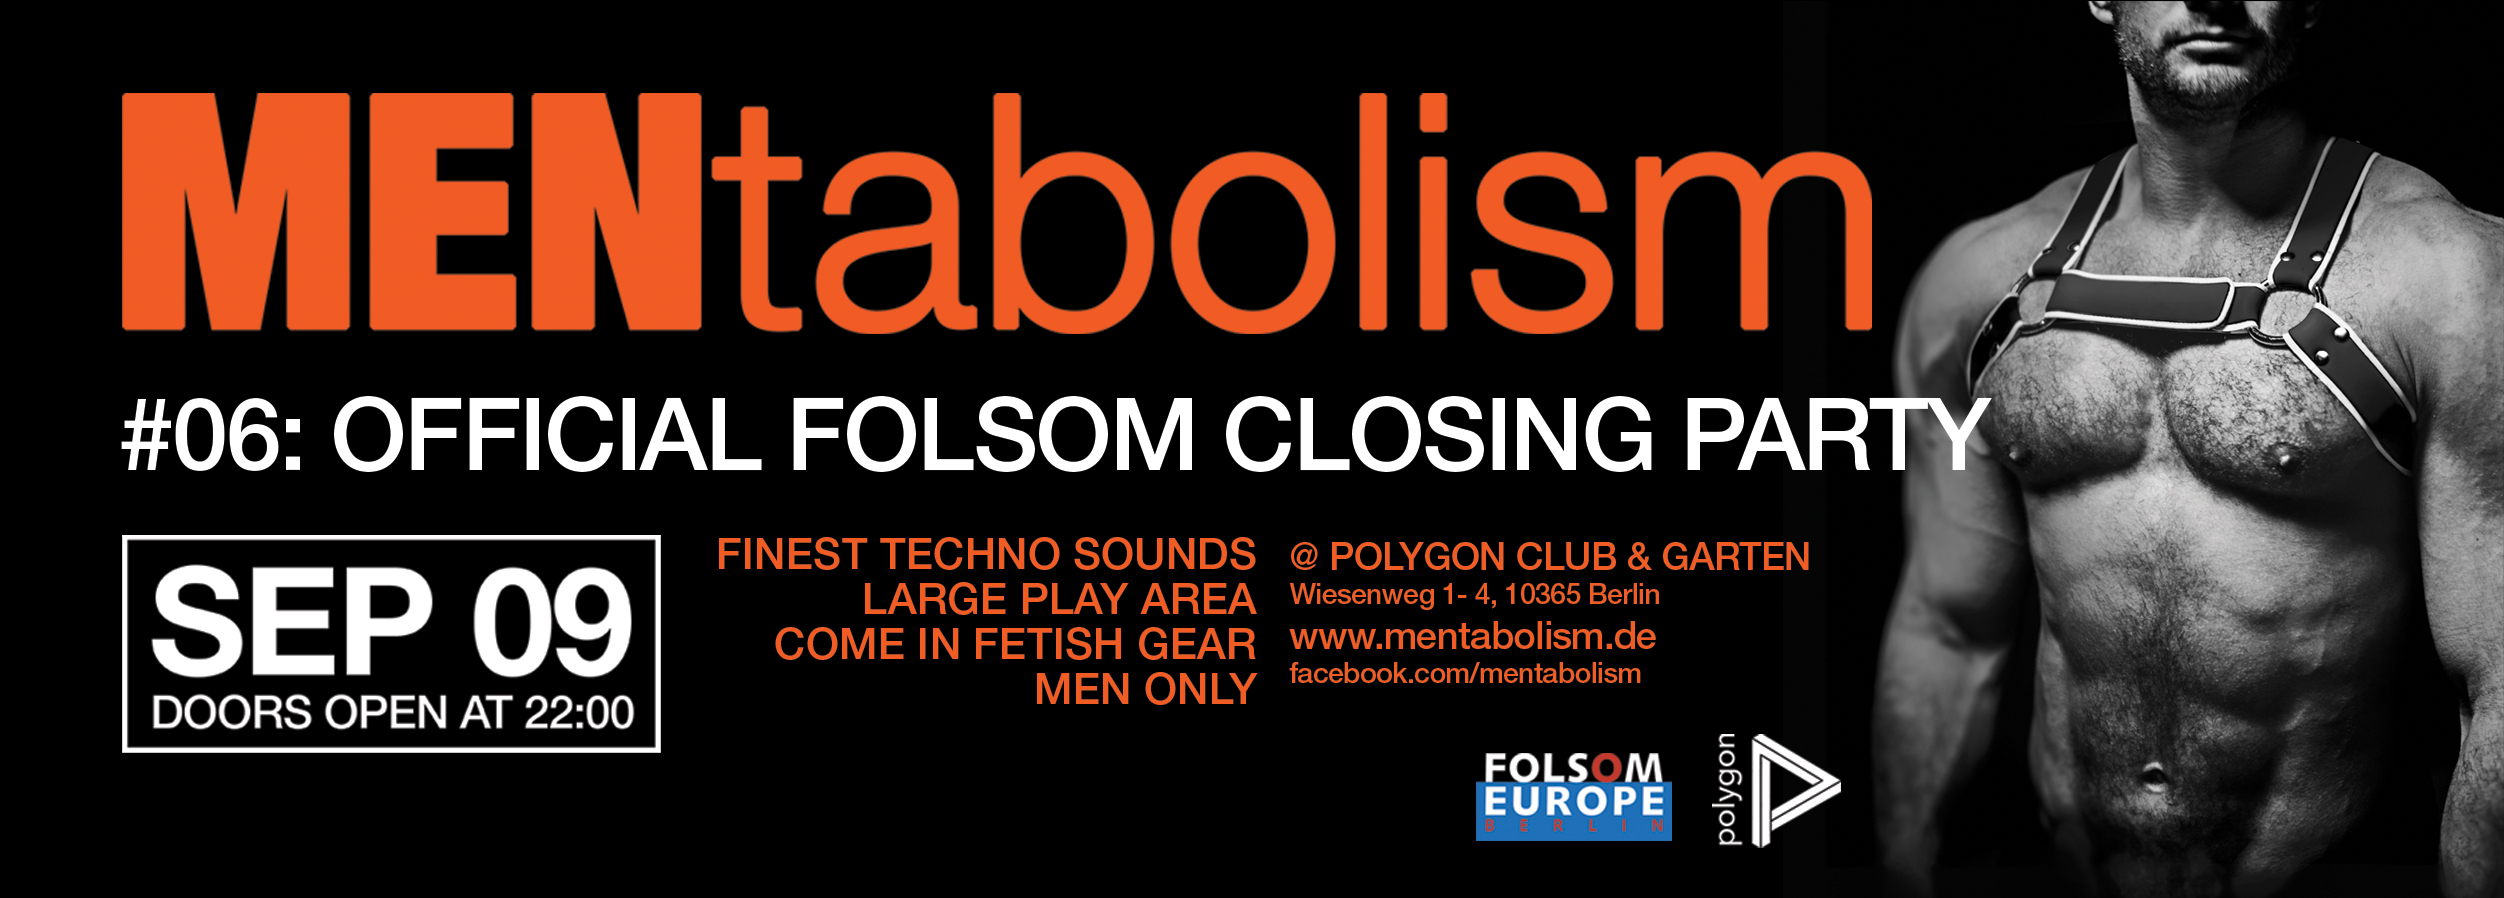 Folsom Europe Closing party, Fetish gear, Sept. 9th, Doors open at 22:00